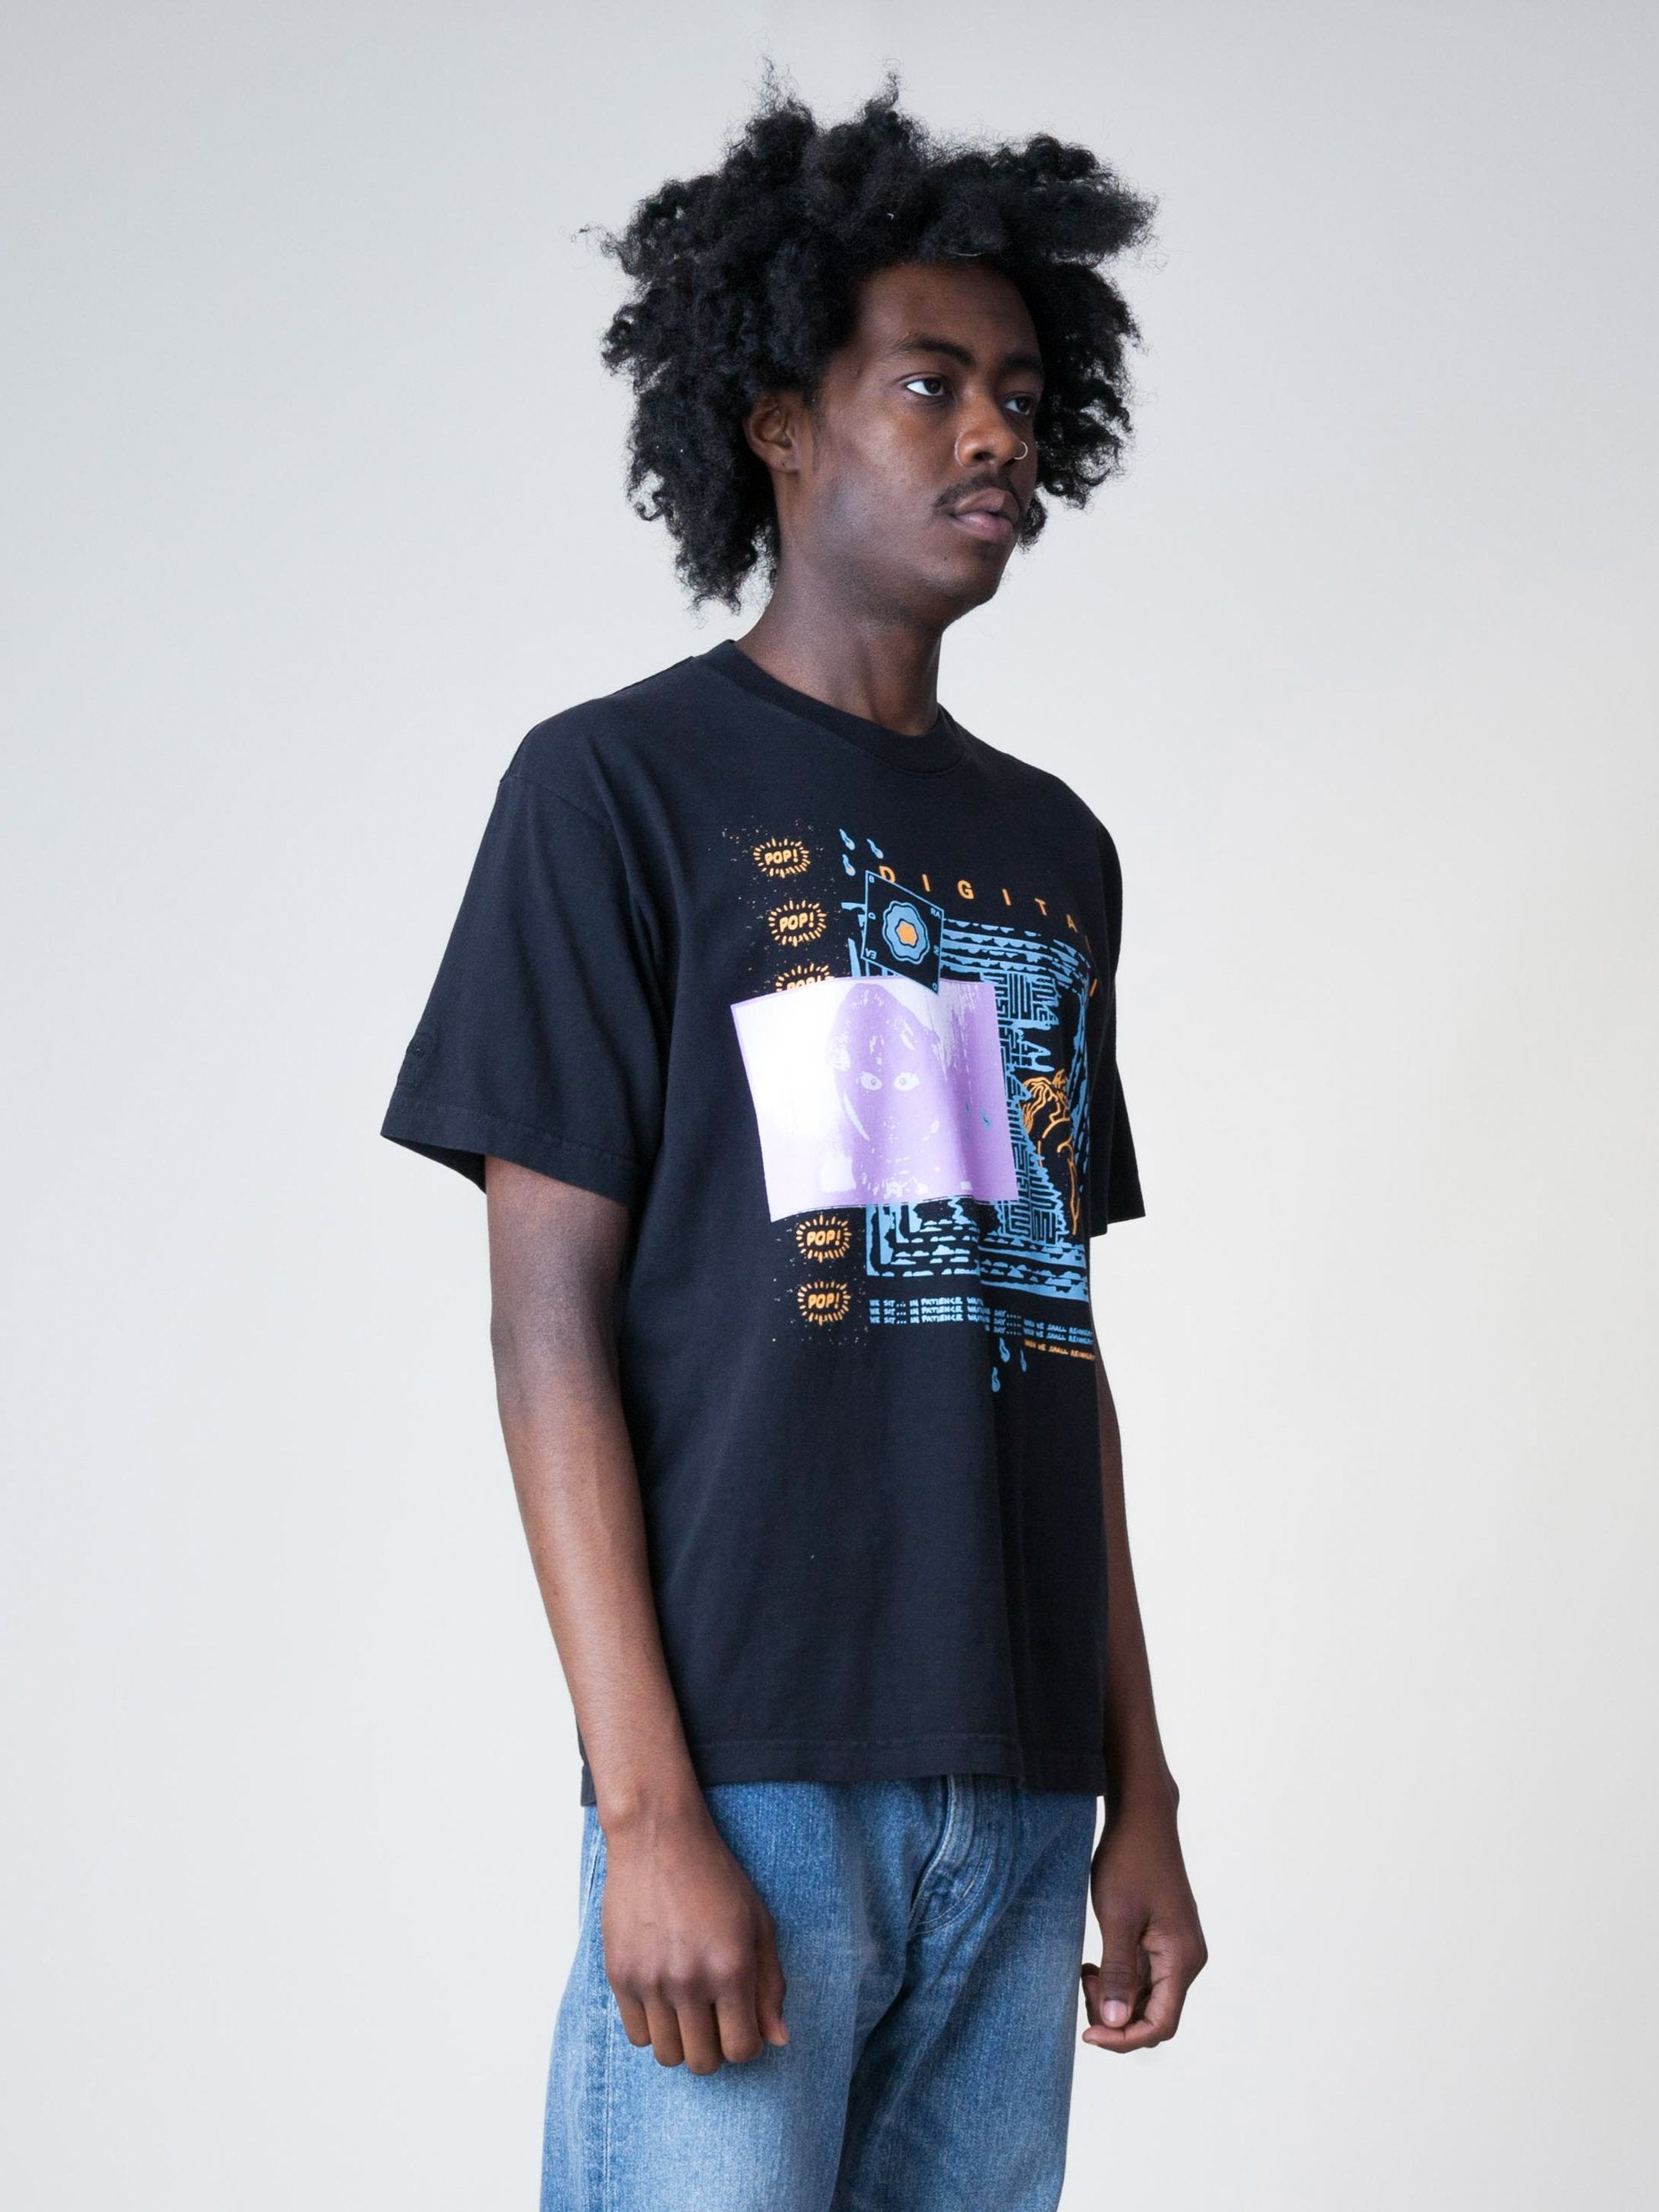 Black Digital Life S/S T-Shirt 4